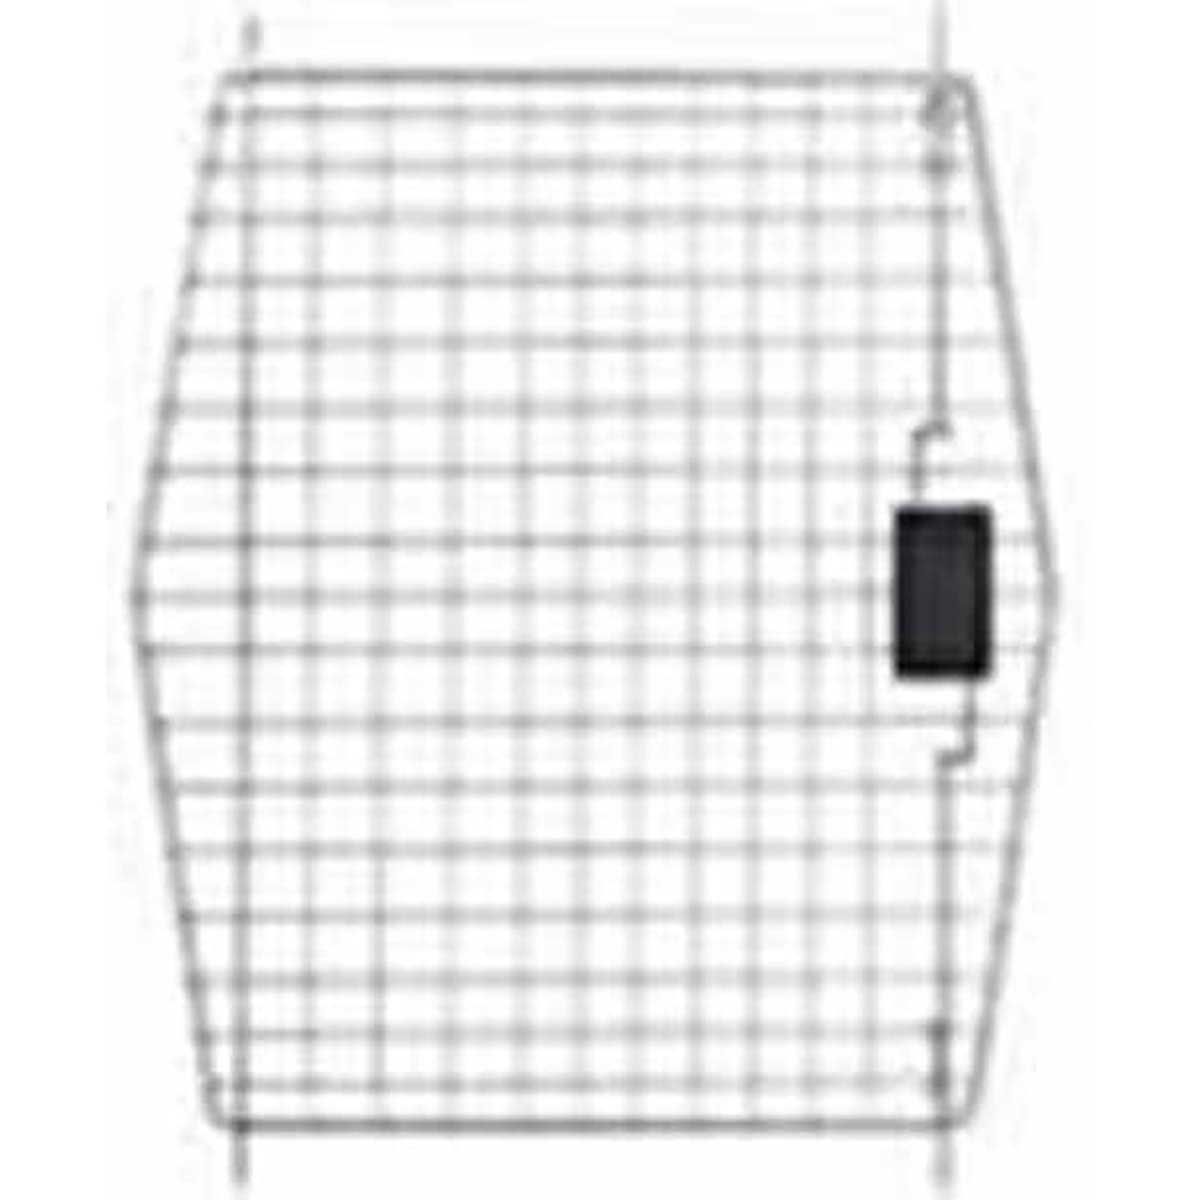 Petmate Vari/Sky Kennel Door X Large - 22.5 inches (Height) by 18.87 inches (Width)